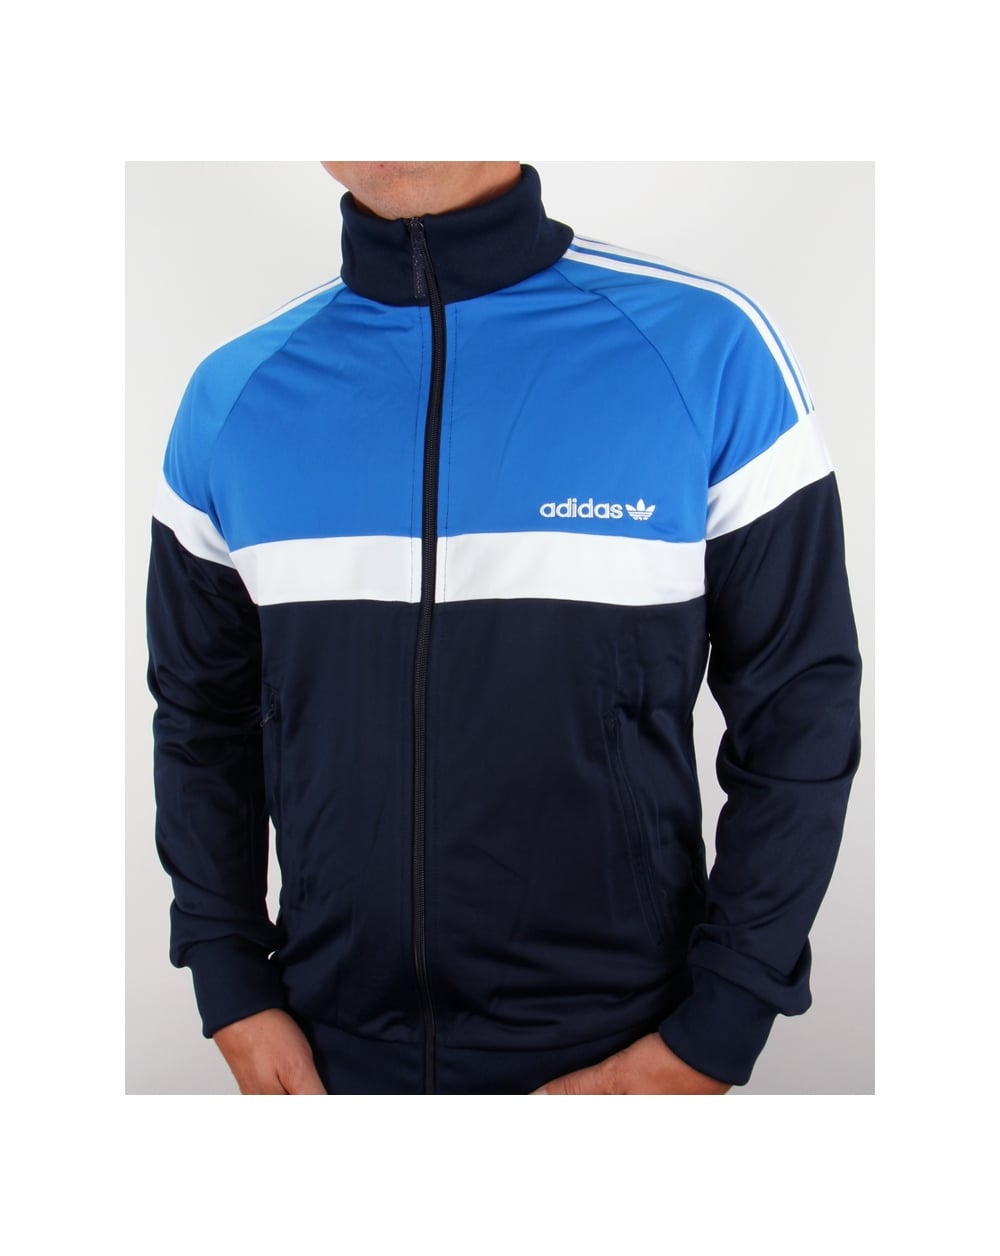 adidas originals tracksuit adidas originals itasca track top navy/royal blue YVQVTCO